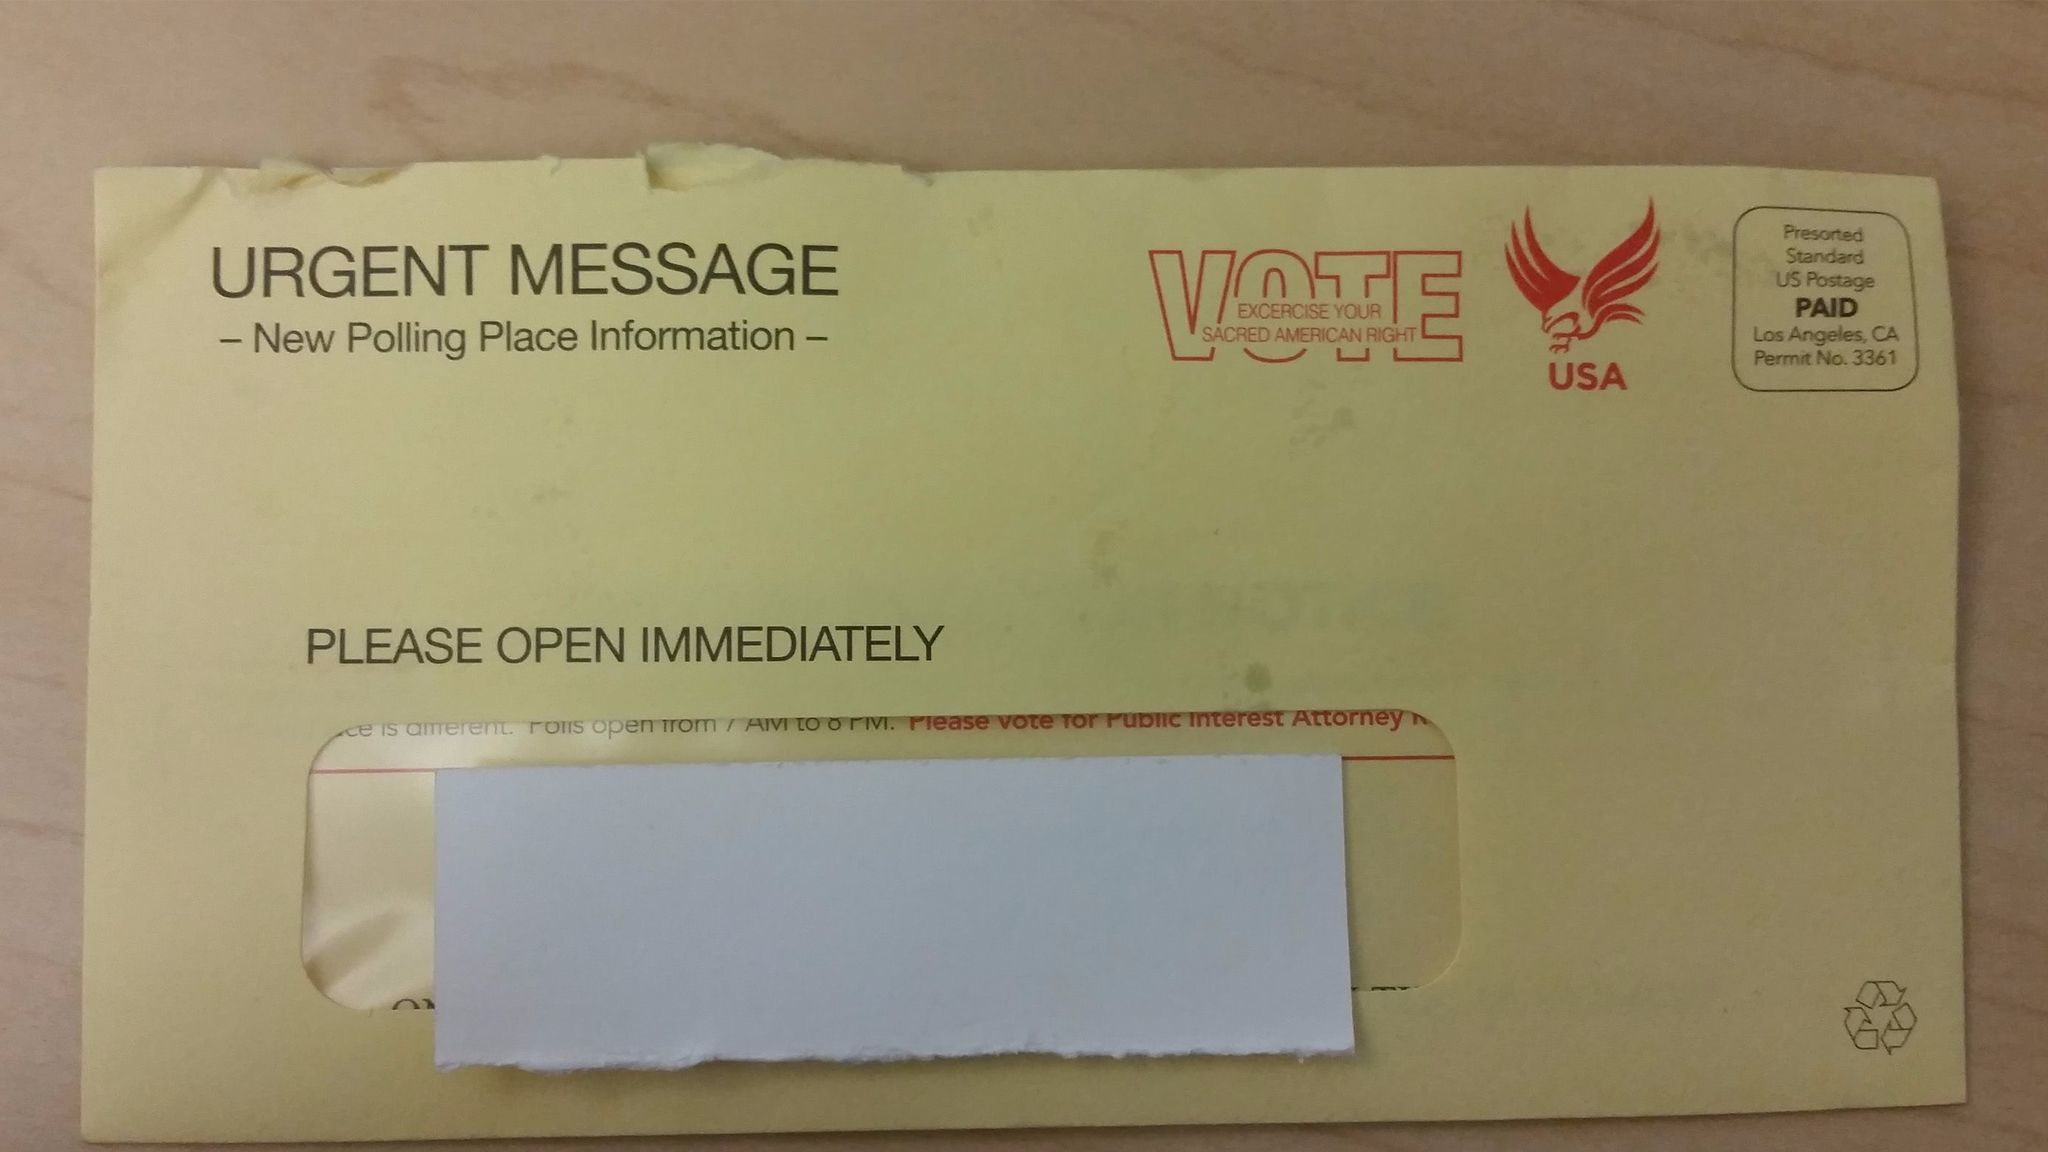 The outer envelope of a mailer sent by Robert Lee Ahn.